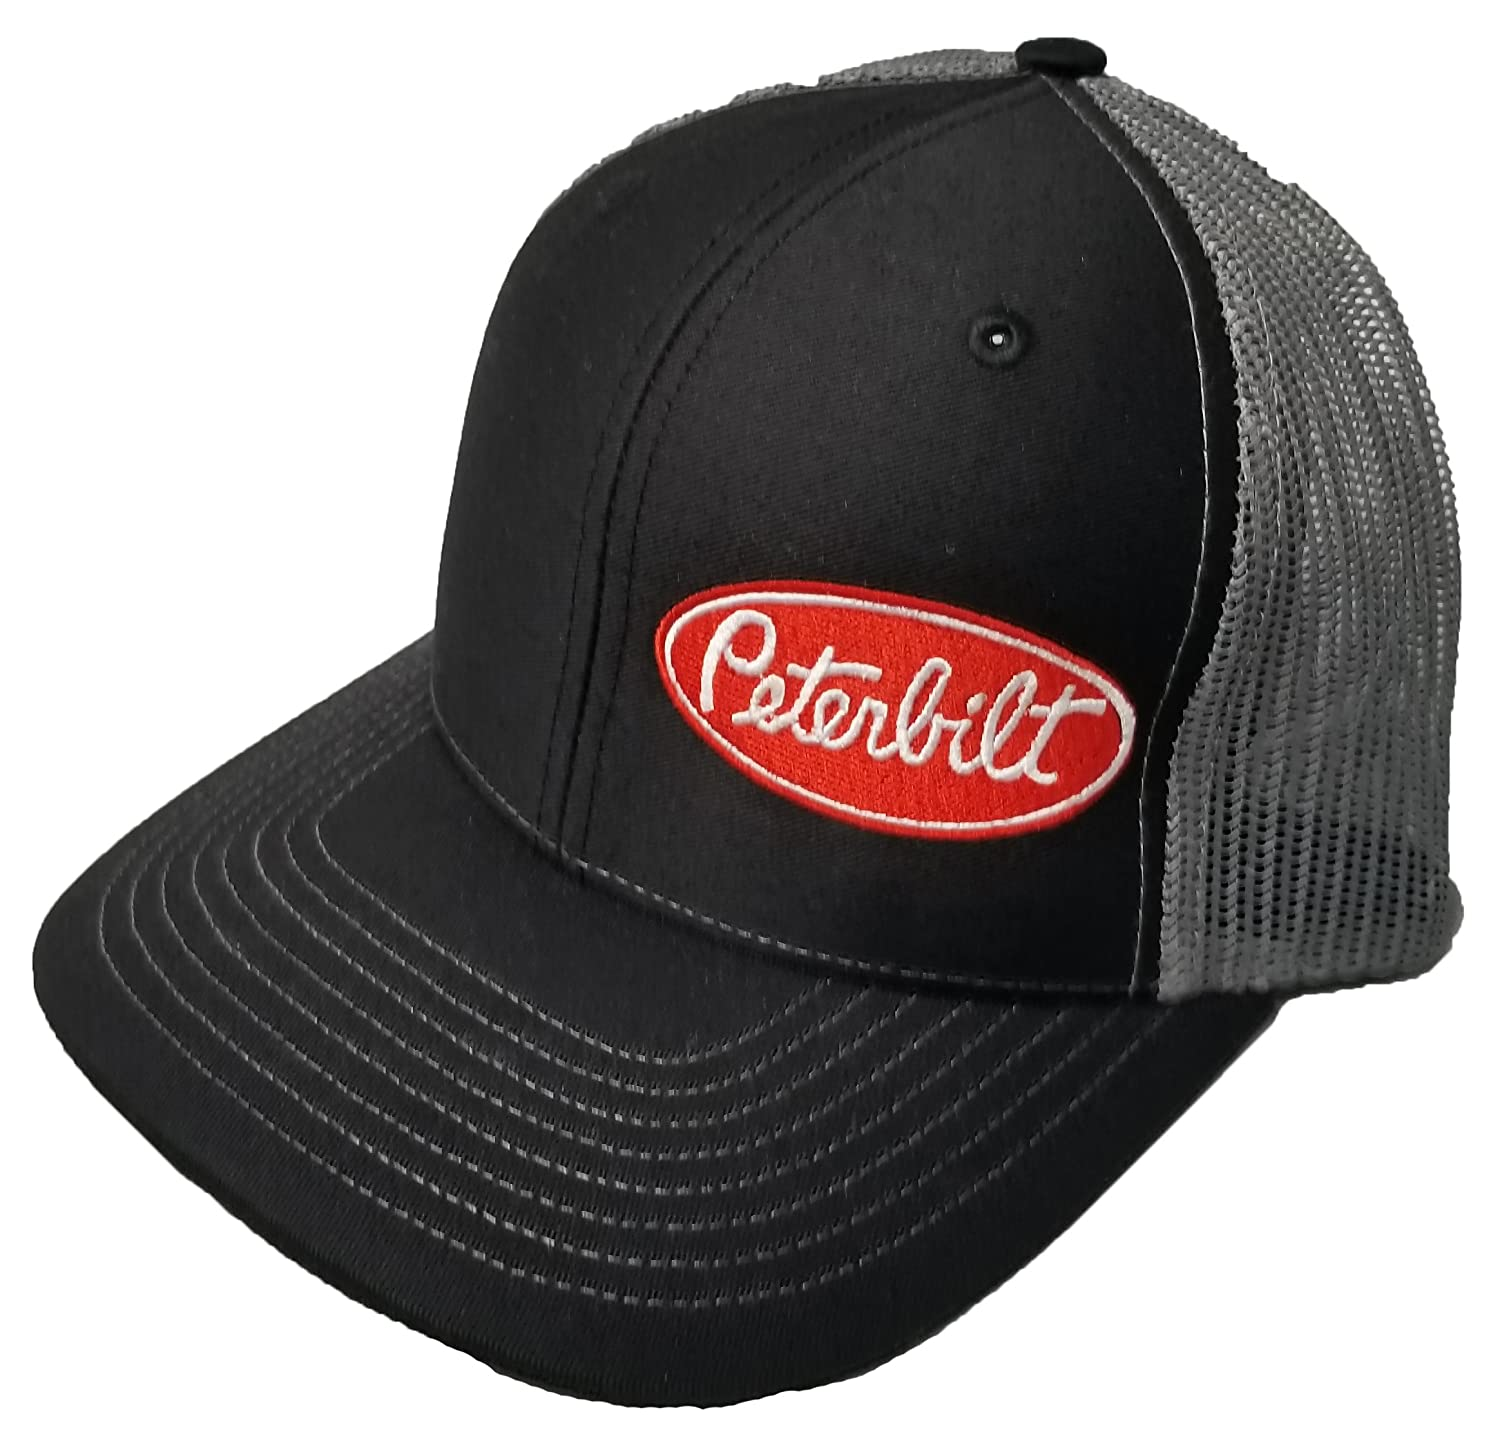 dcd1f415a2f Richardson Peterbilt Logo Emblem Hat Cap Adult Adjustable Snapback Unisex  at Amazon Men s Clothing store